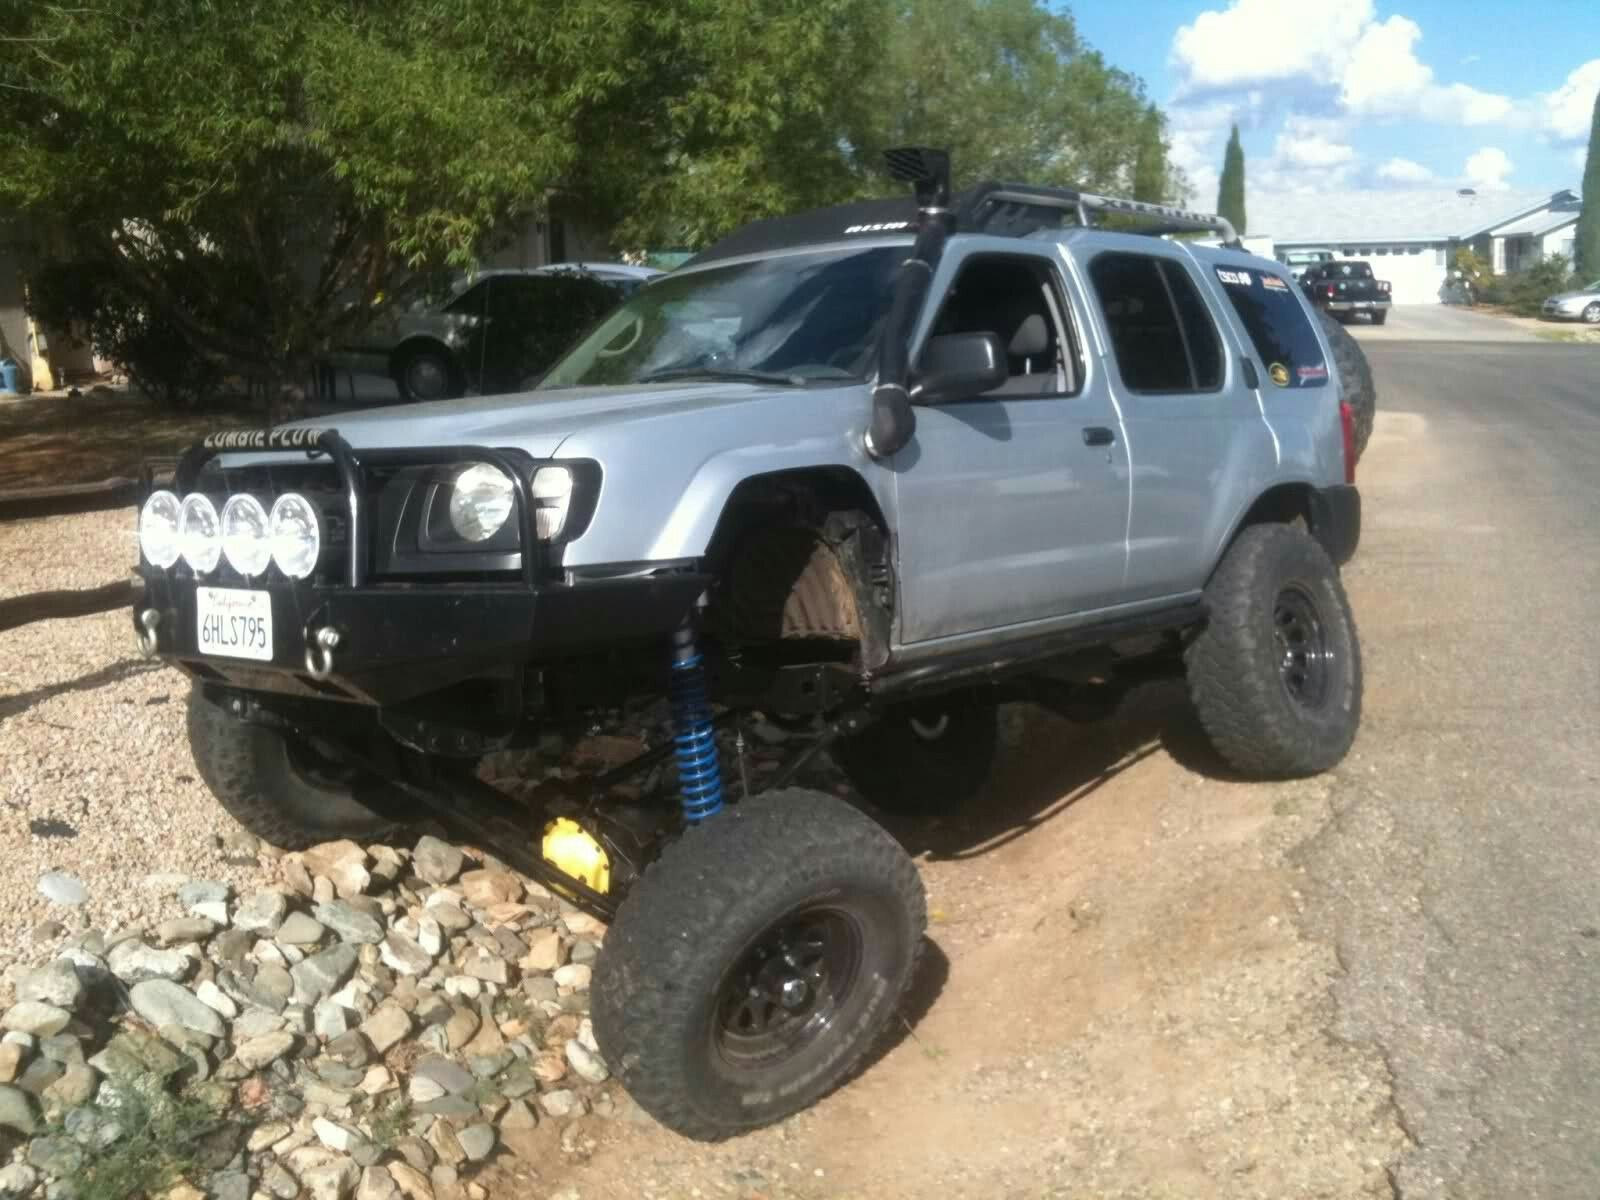 xterra-they ditched the ifs and made a solid axle, she looks pretty flexin'